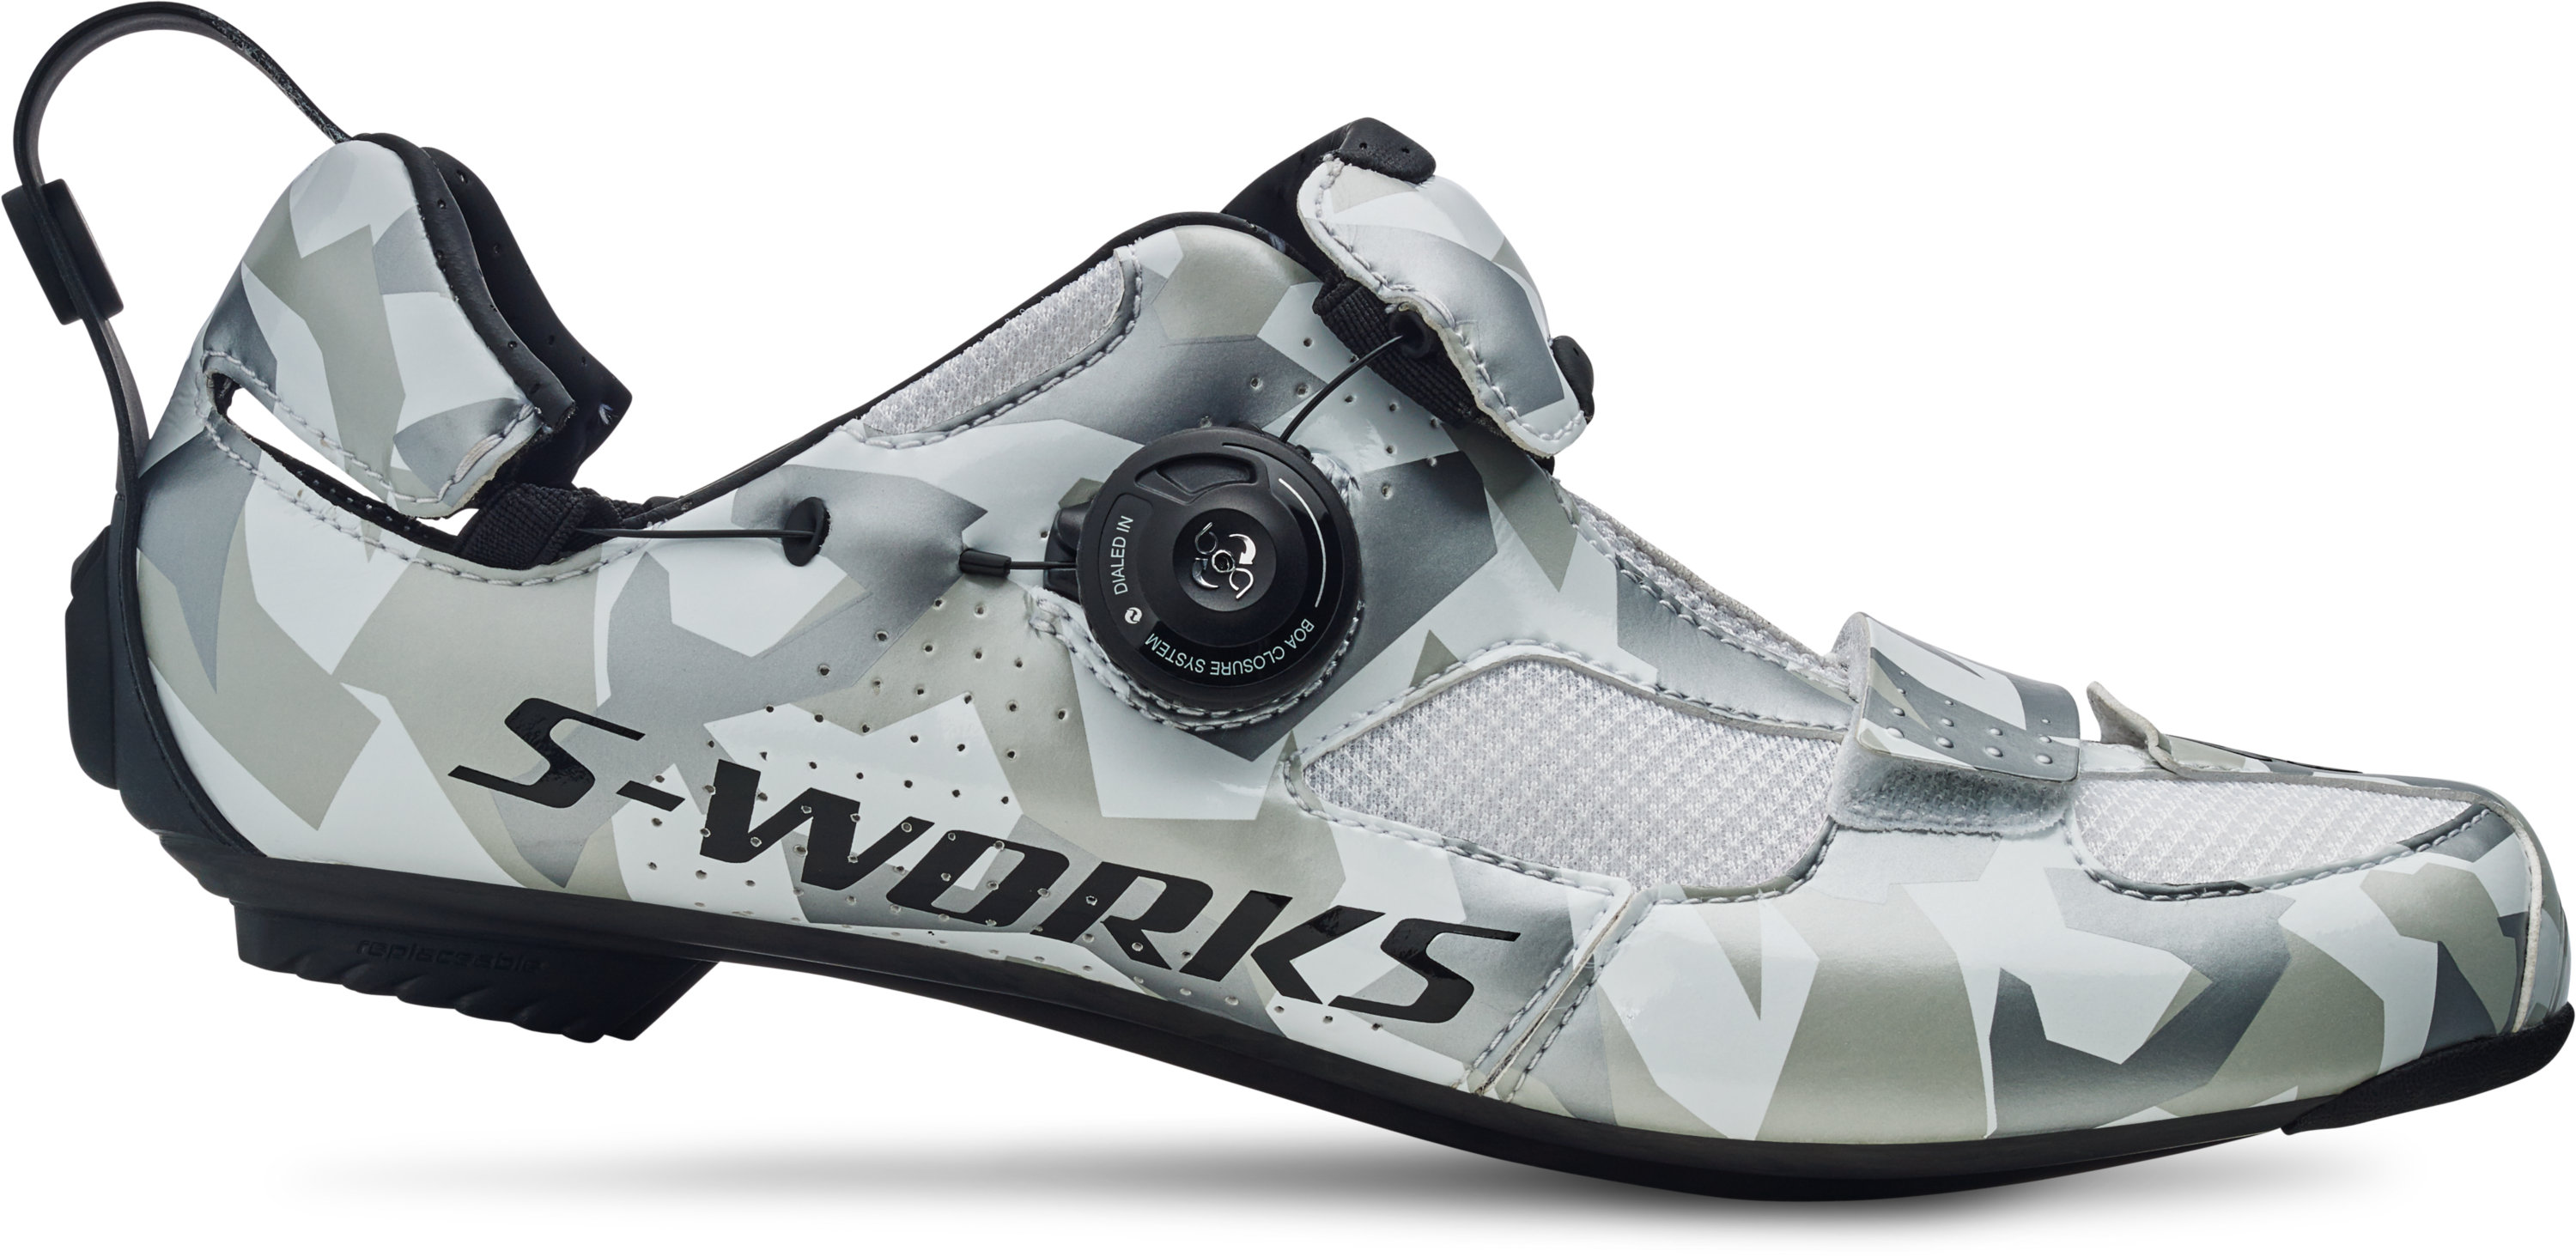 S-Works Trivent Triathlon Shoes | Specialized.com